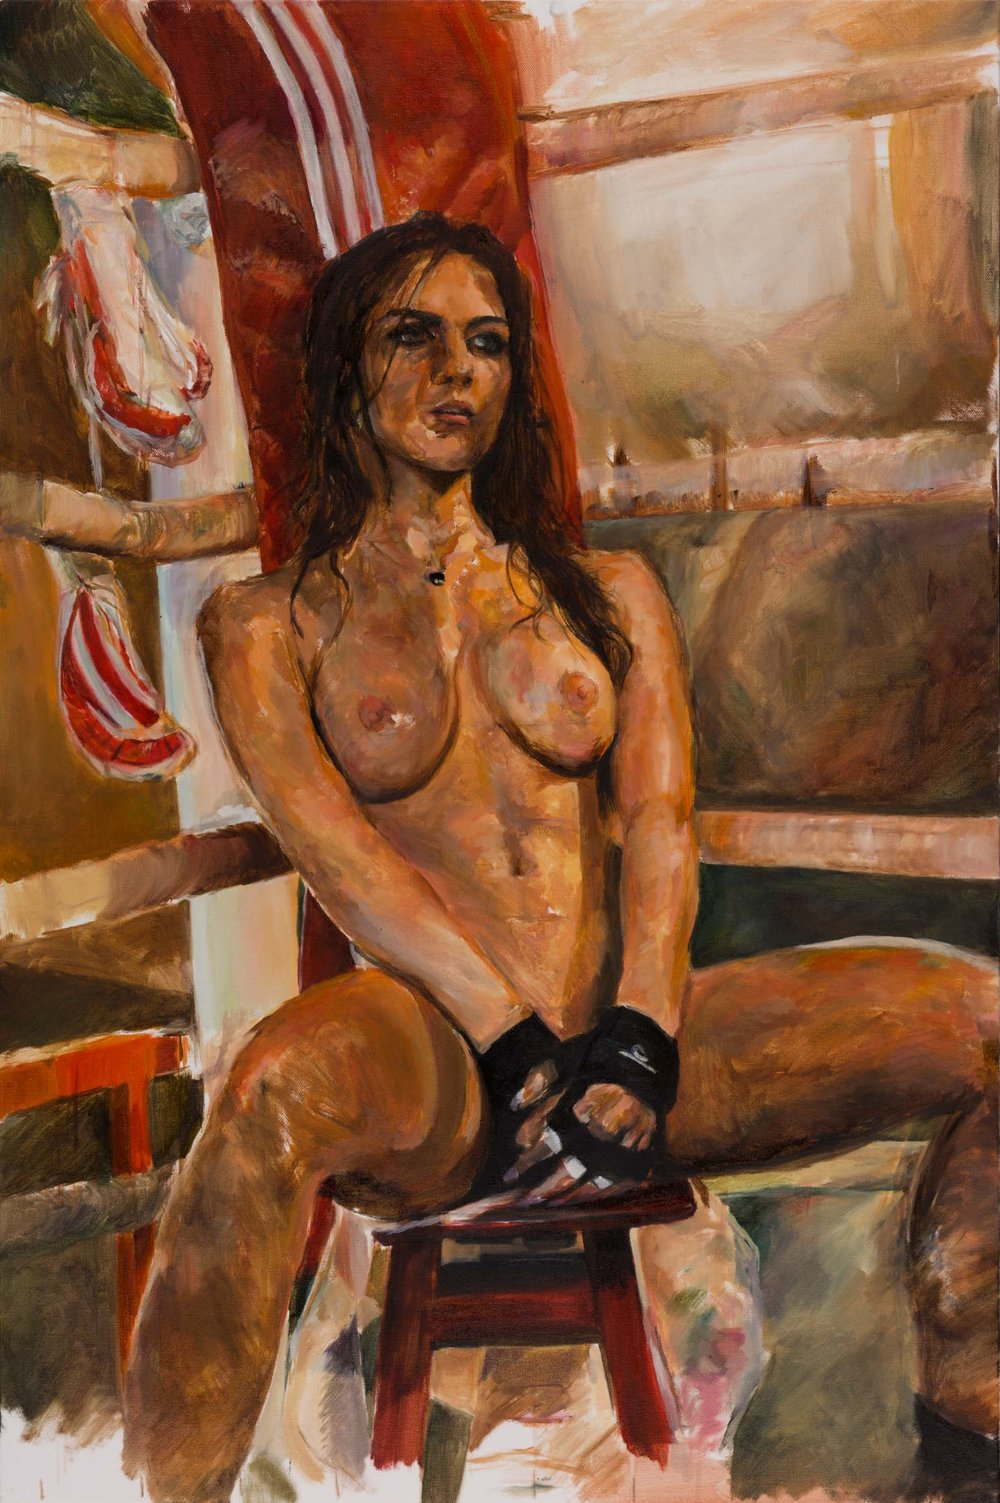 "Media : Oil on Canvas  Size : 24"" by 36""  Date : Dec 2016   PURCHASE PRINT  (Request)   Ref Photogrpaher :  Christian Gaul   Ref Model : Aline Franzoi"